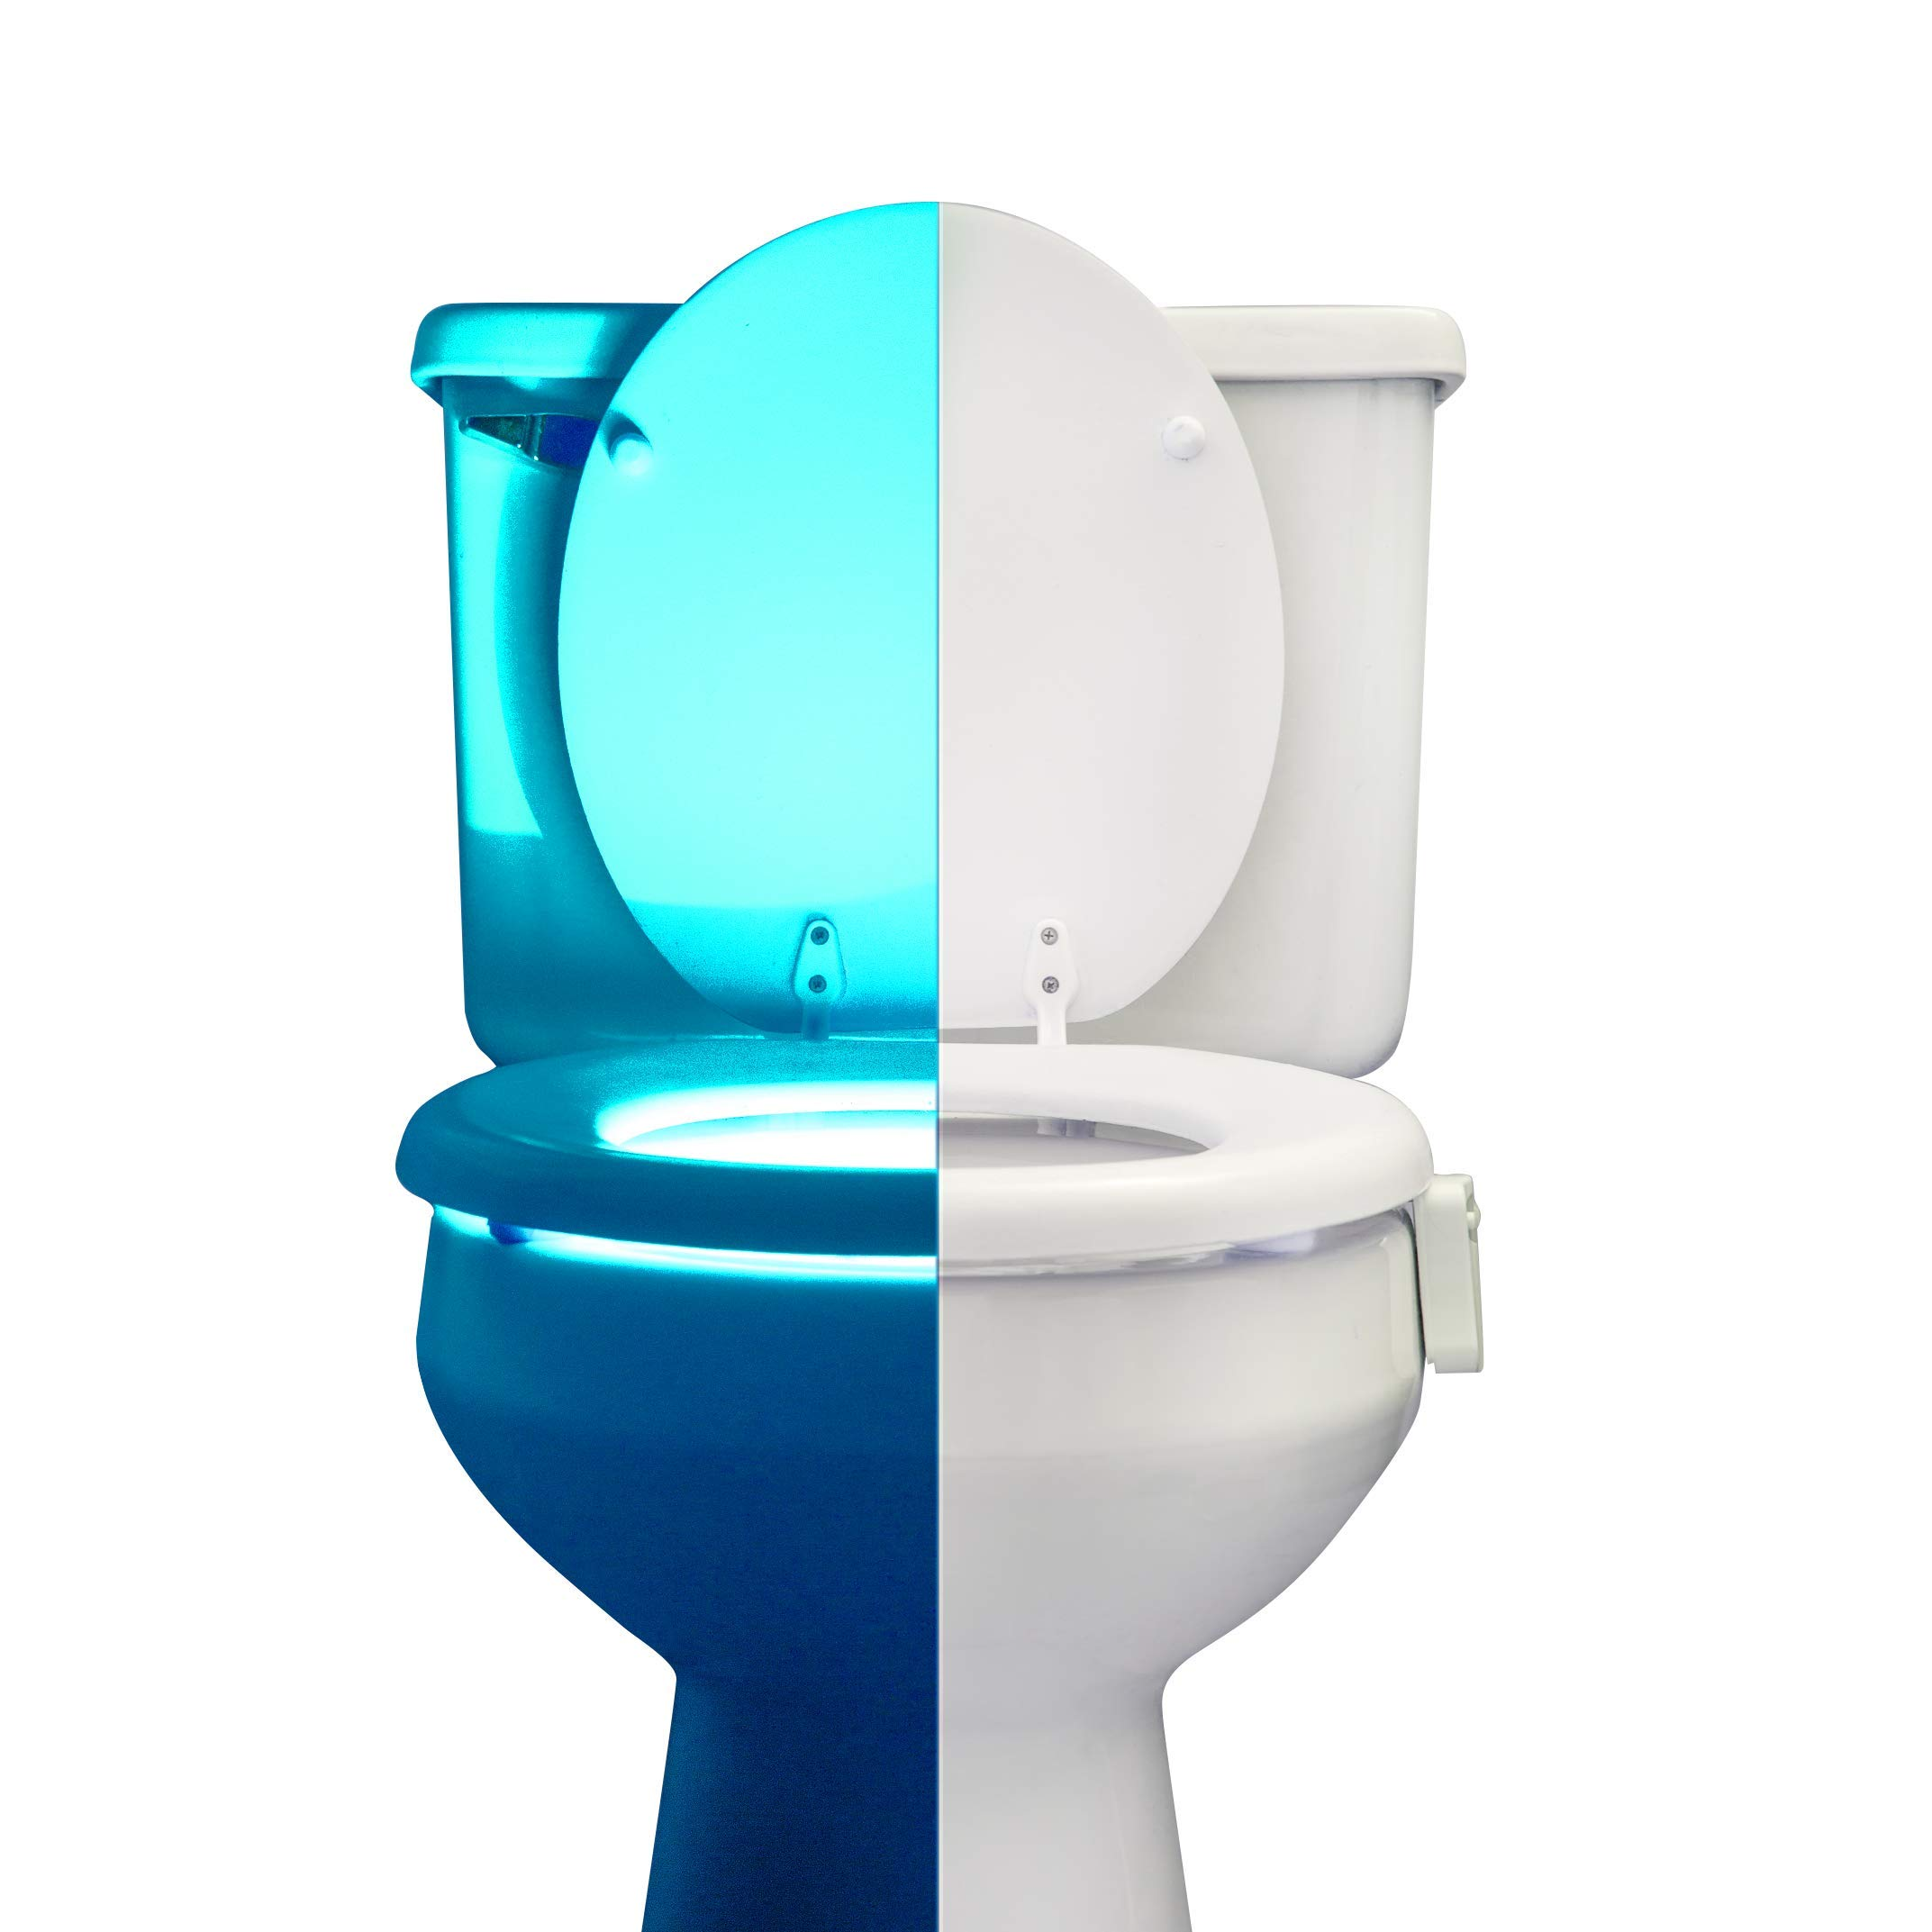 RainBowl Motion Sensor Toilet Night Light - Funny & Unique Birthday Gift Idea for Dad, Mom, Him, Her, Men, Women & Kids - Cool New Fun Gadget, Best Gag Christmas Present by RainBowl